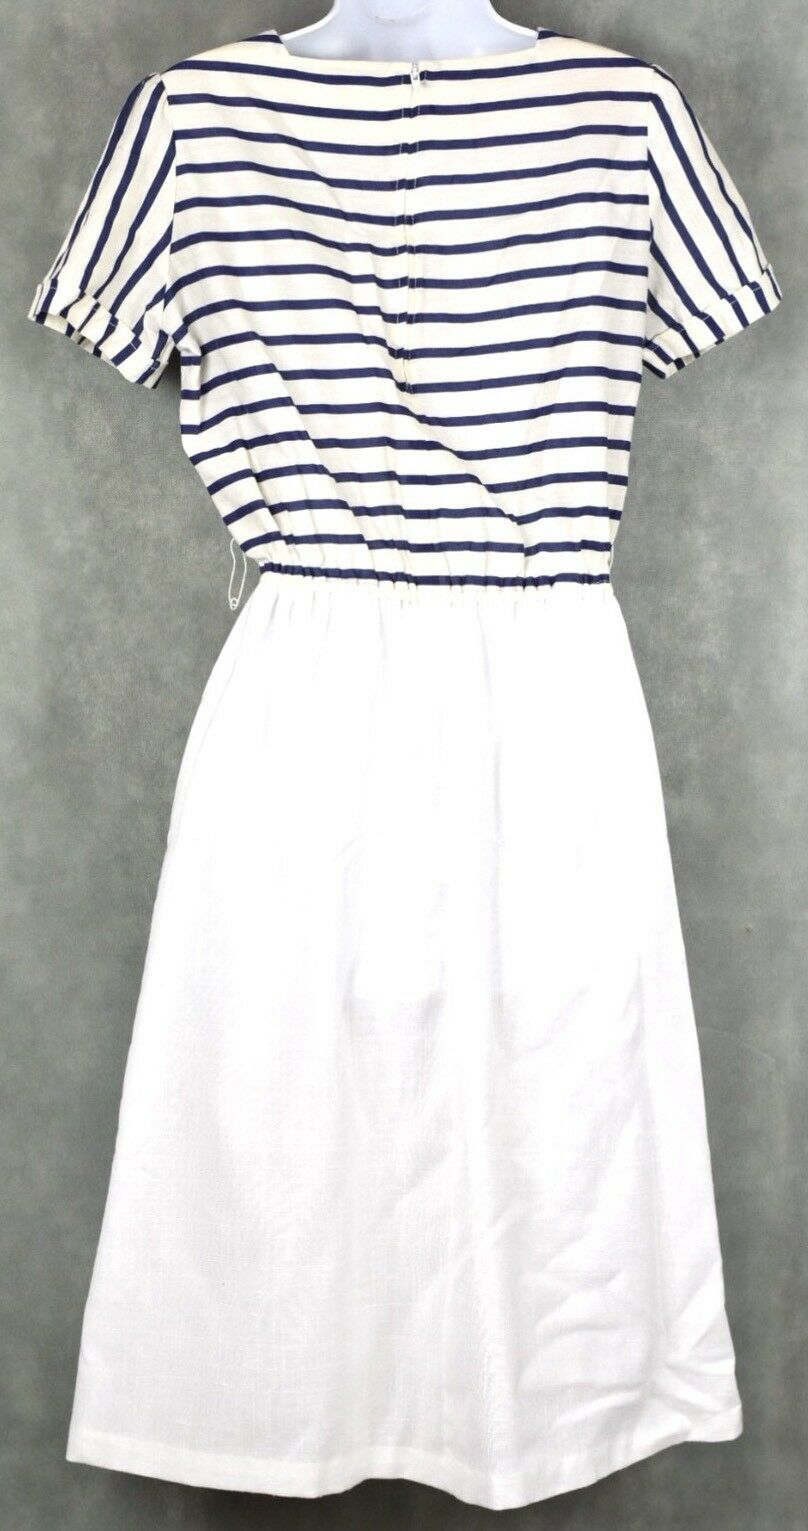 Vintage No Brand White And Blue Dress Lot Size 12 - image 8